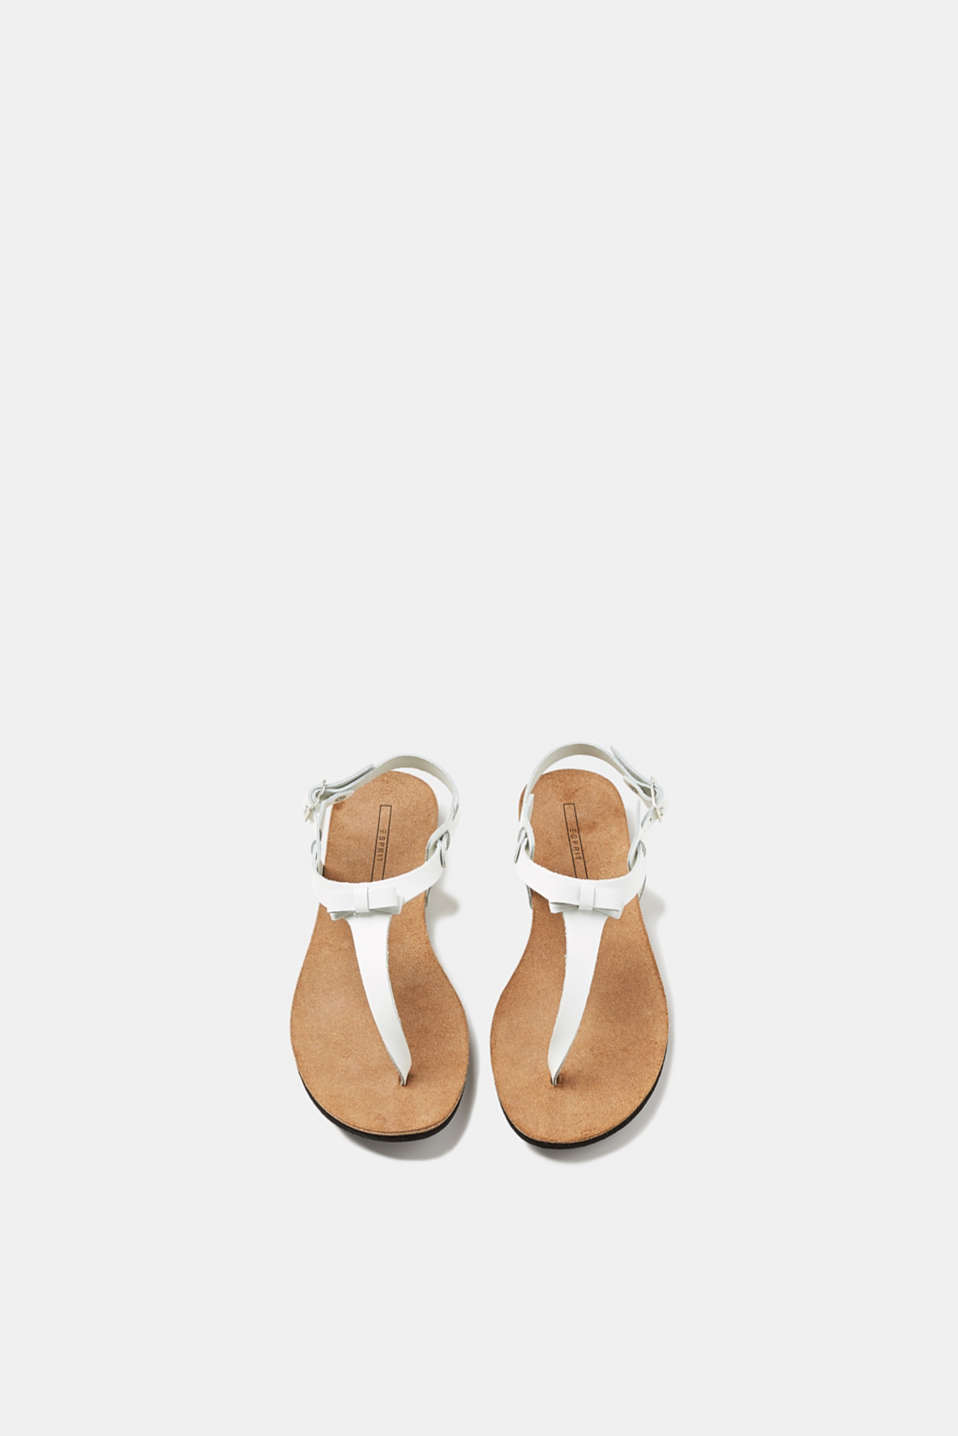 Toe-post leather sandals